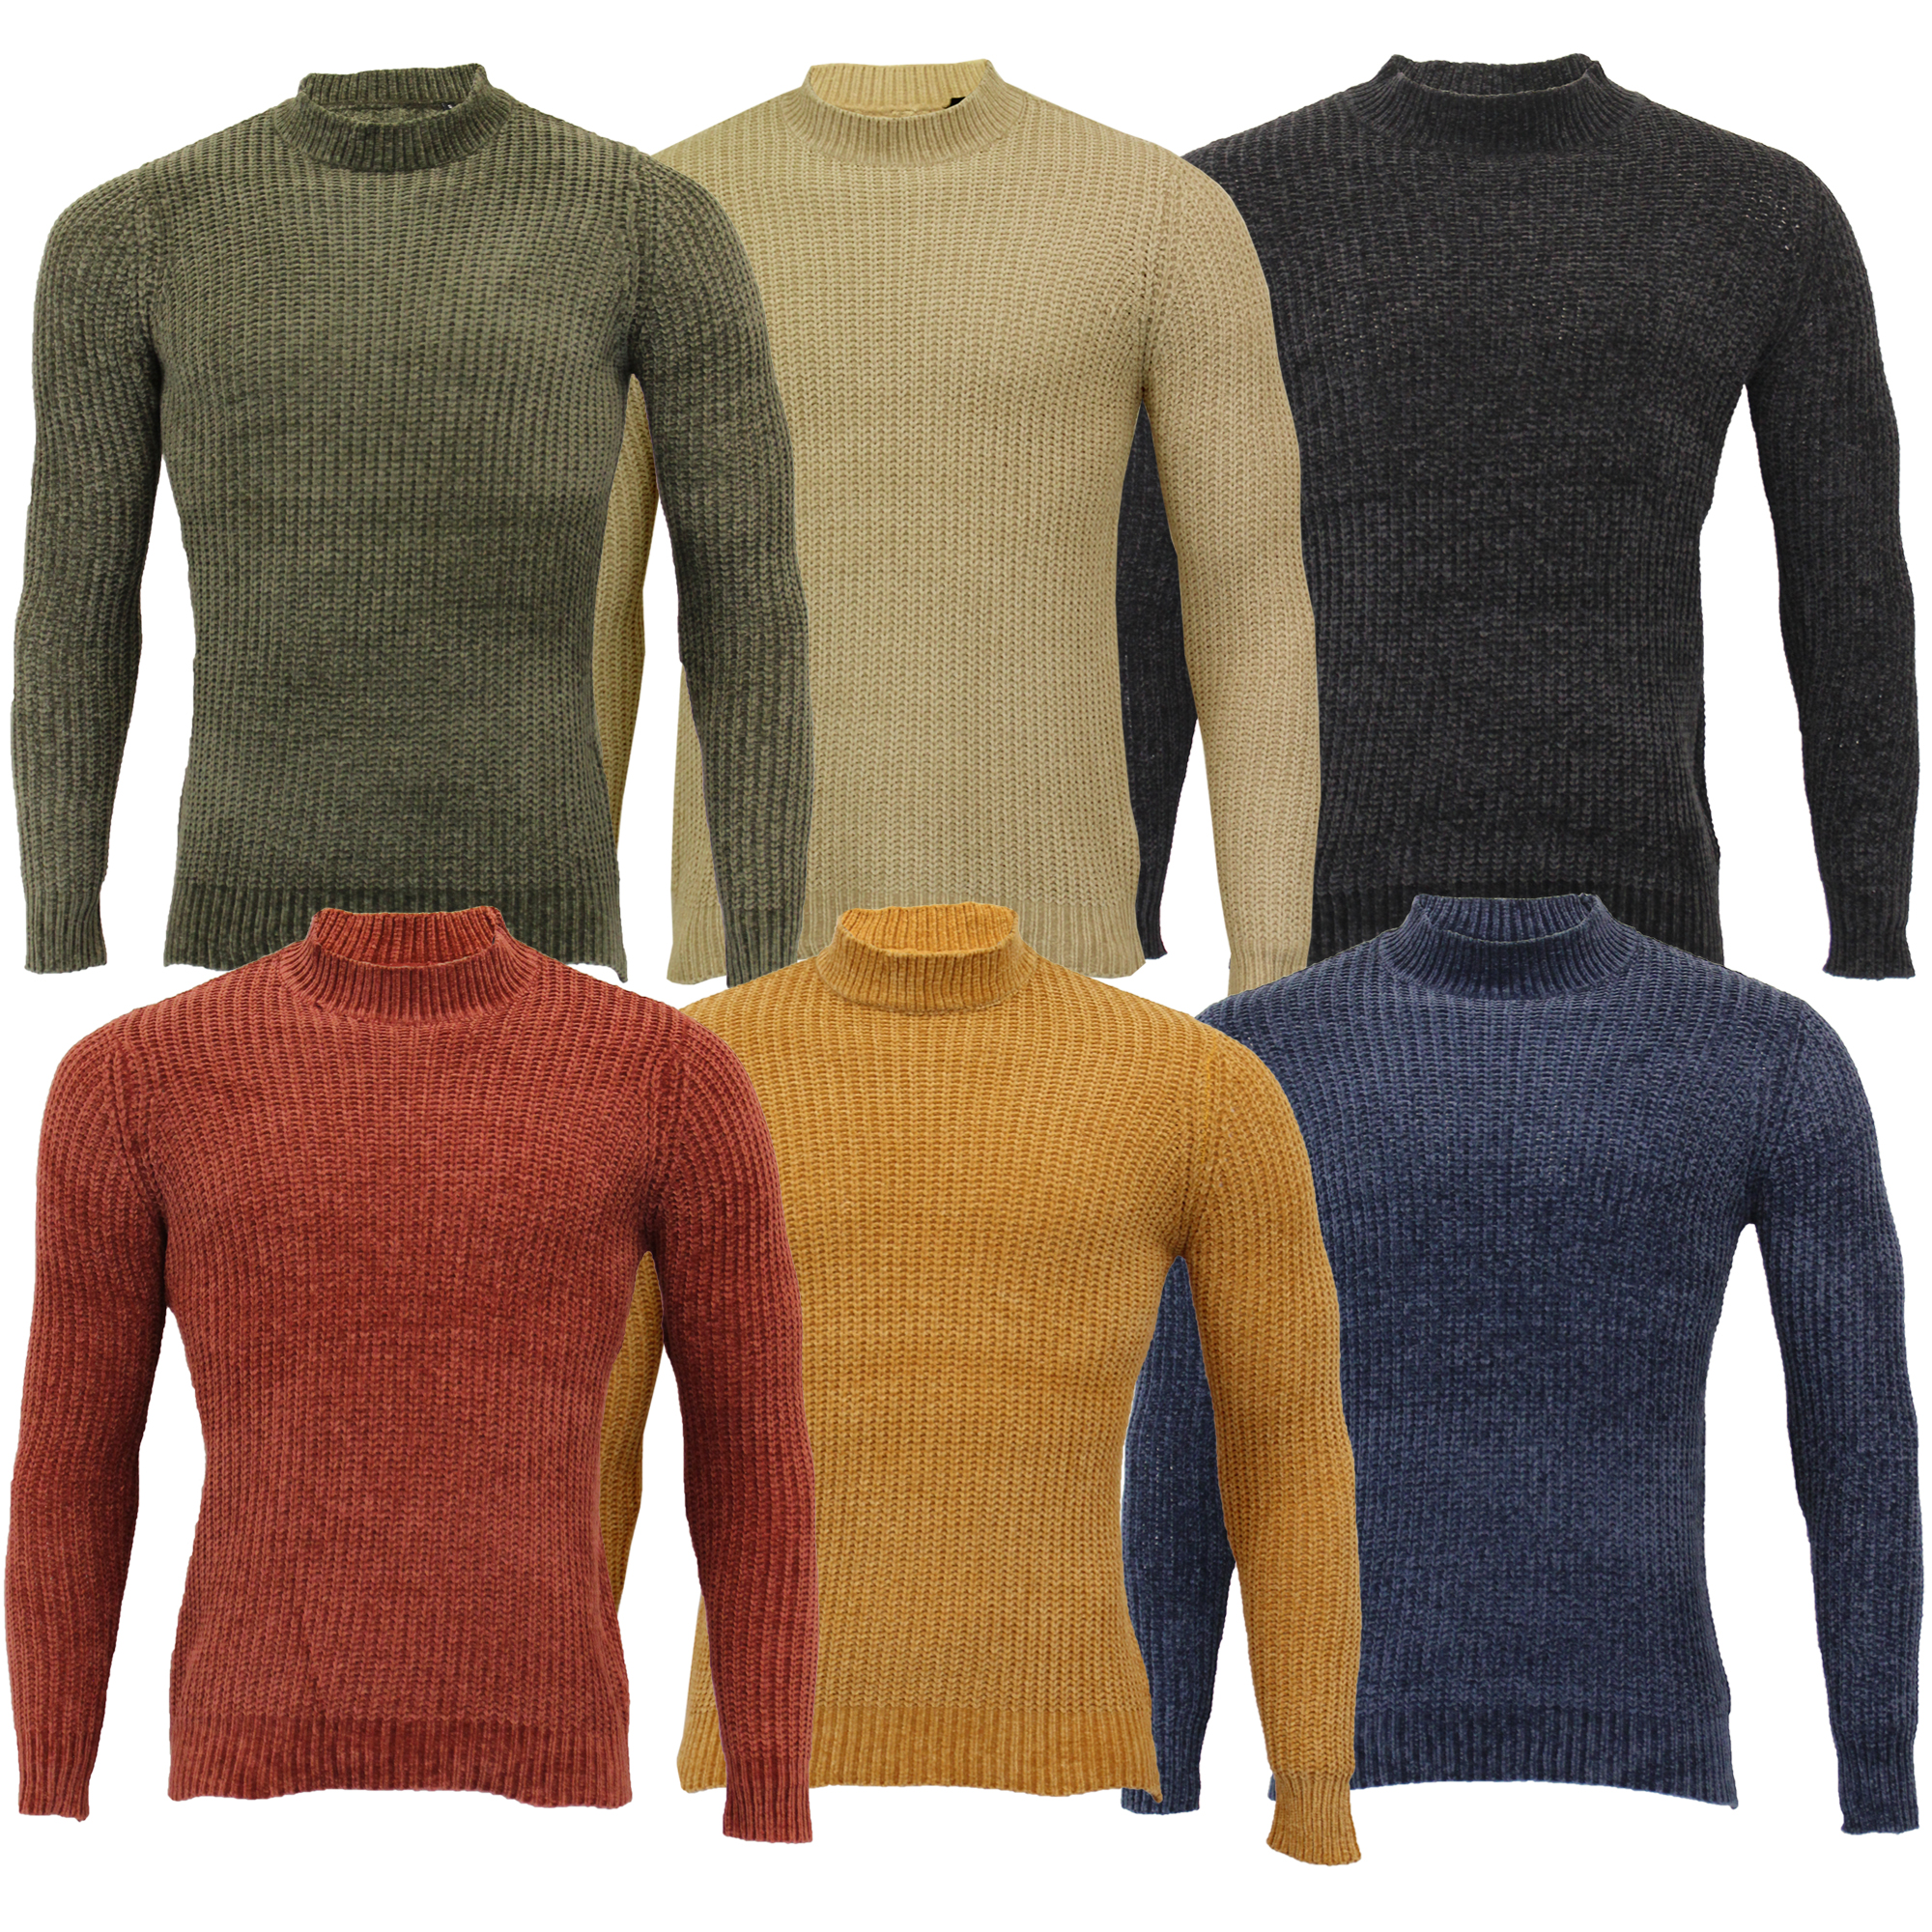 Homme Chenille Pull Brave Soul Câble Taylor Turtle Neck Pullover Top